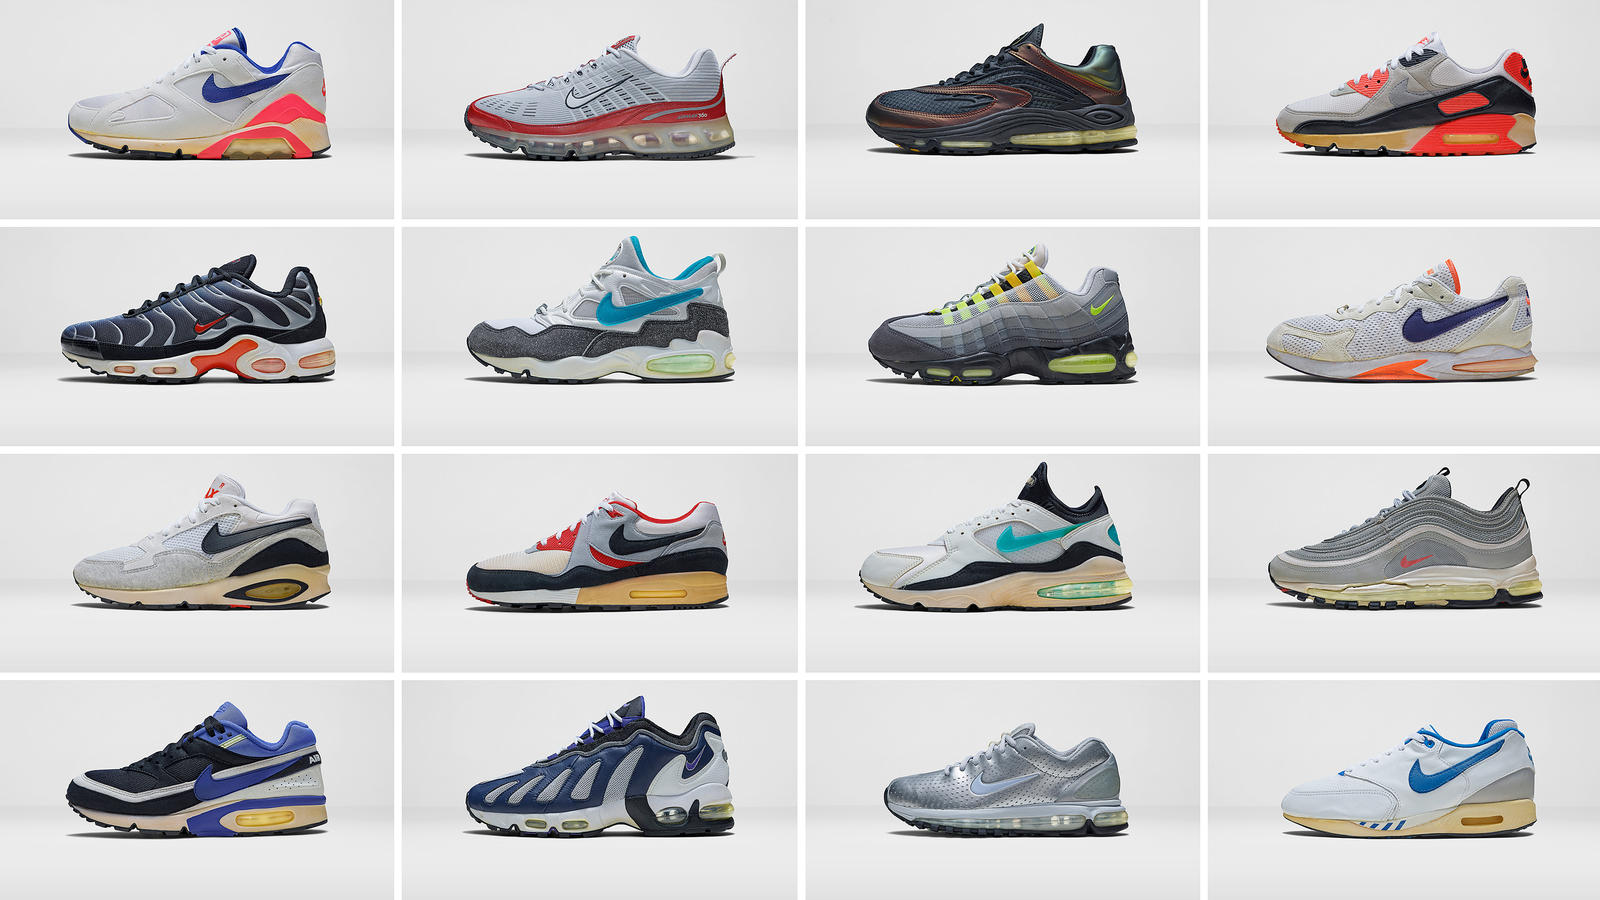 Apariencia consonante Visible  Air Max Archives - Nike News